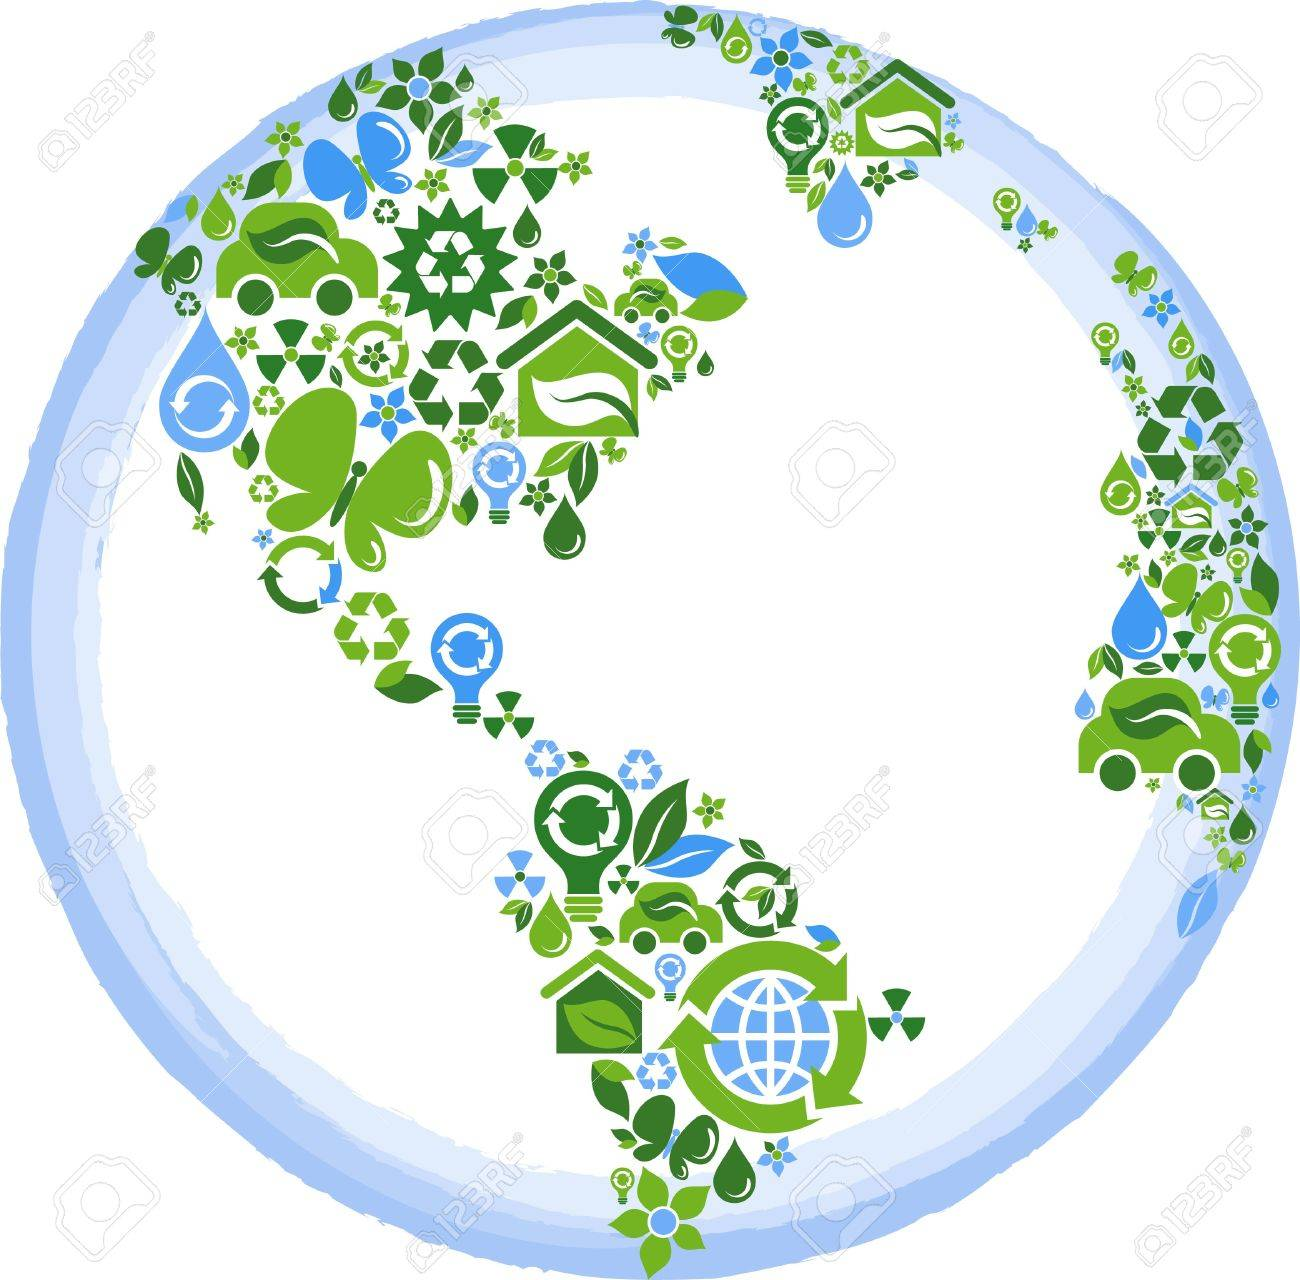 1300x1280 Globe Outline Compose Of Green And Blue Ecological Icons Royalty